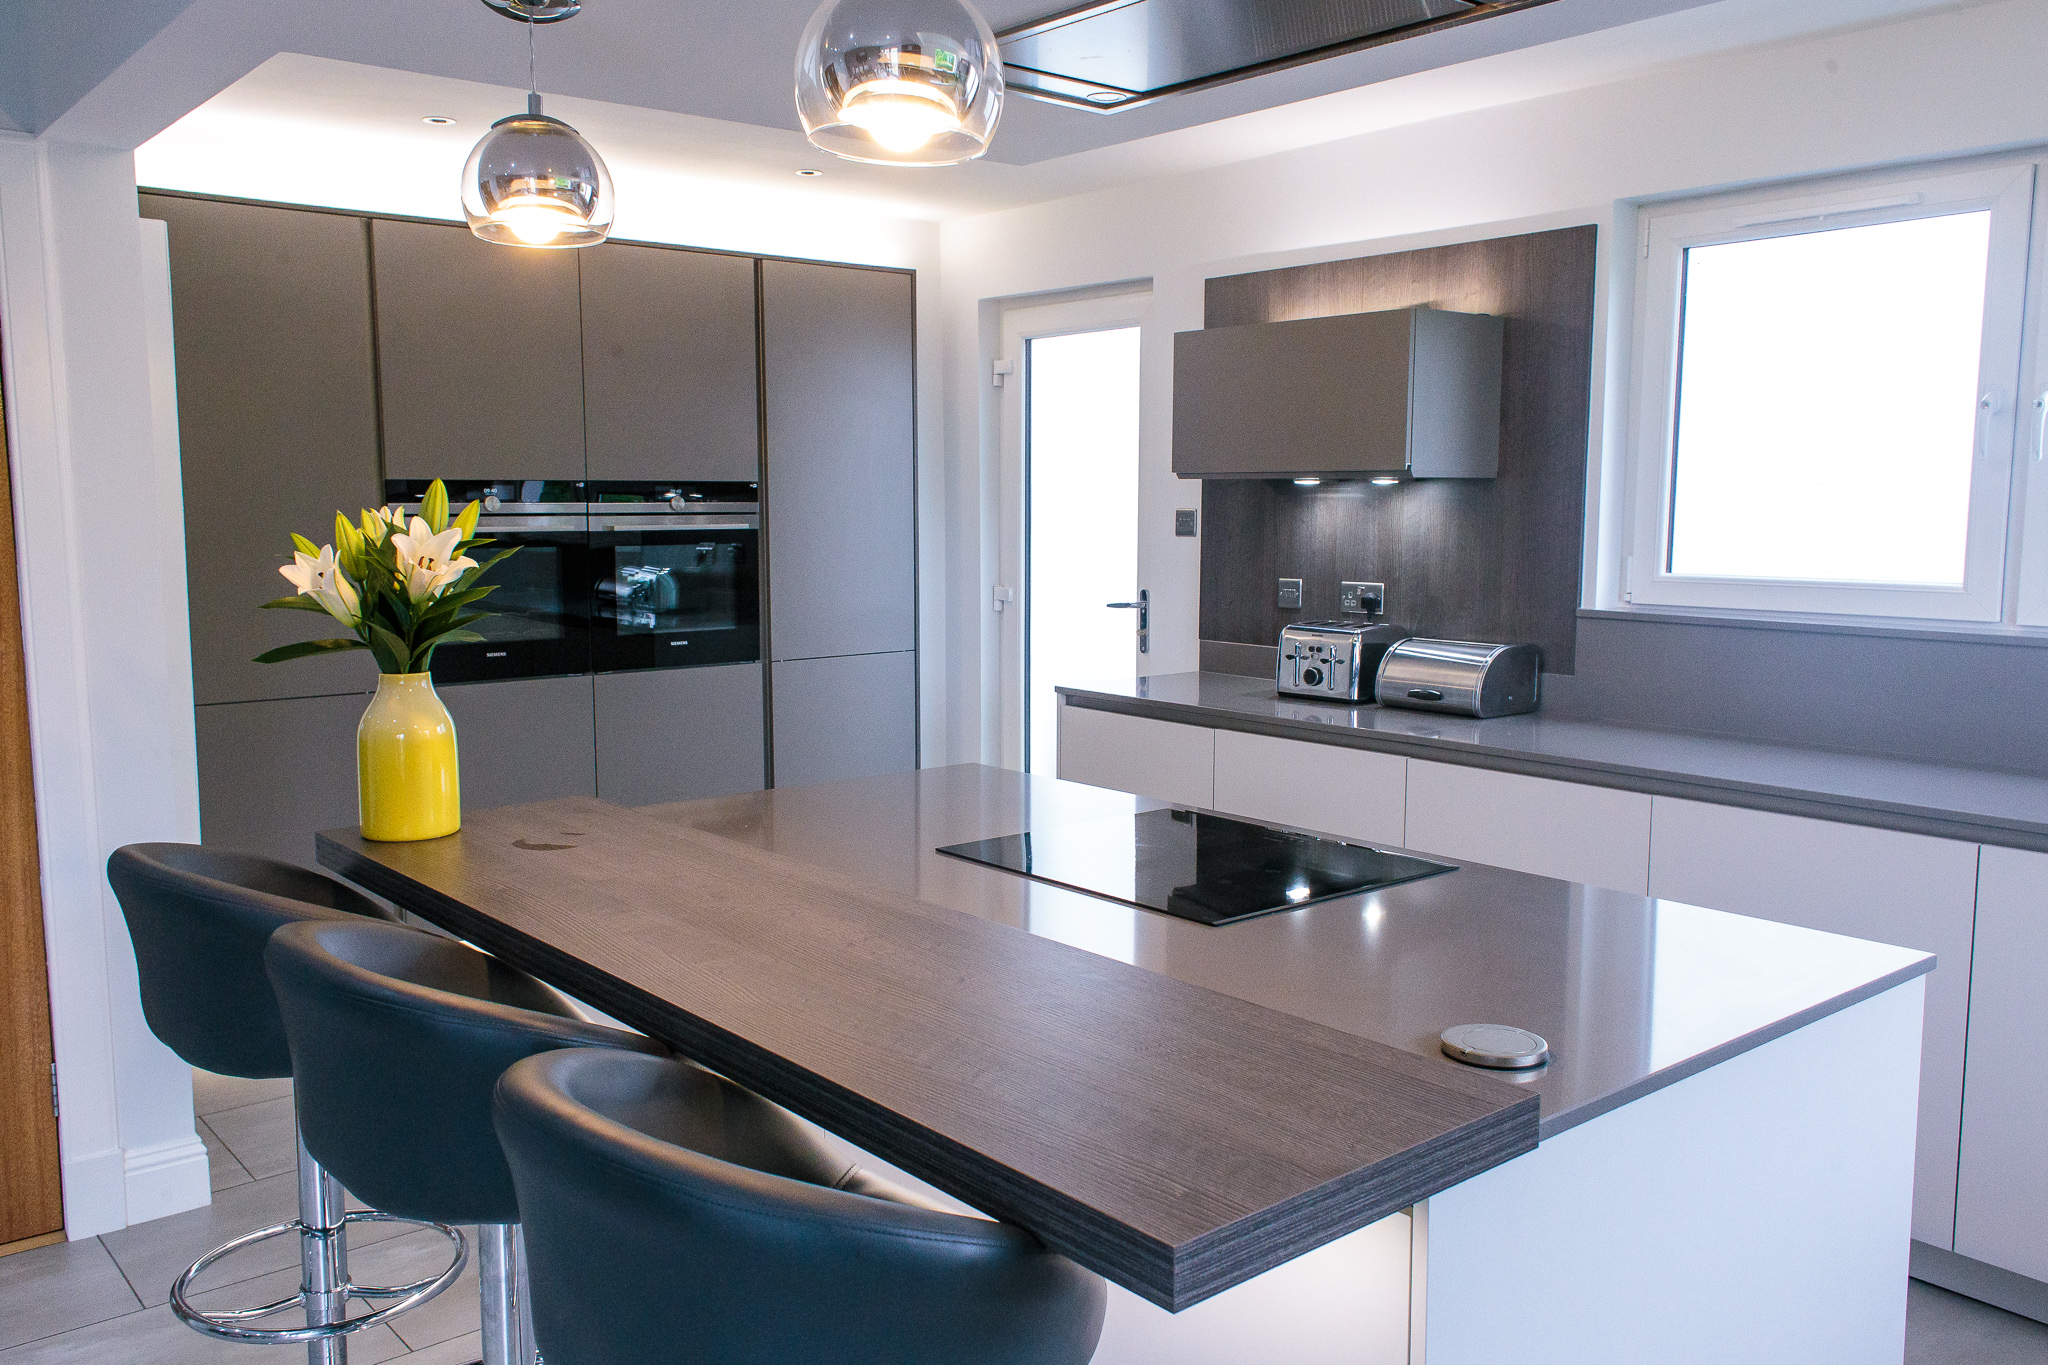 Image 4: Paul & Jackie's New Kitchen